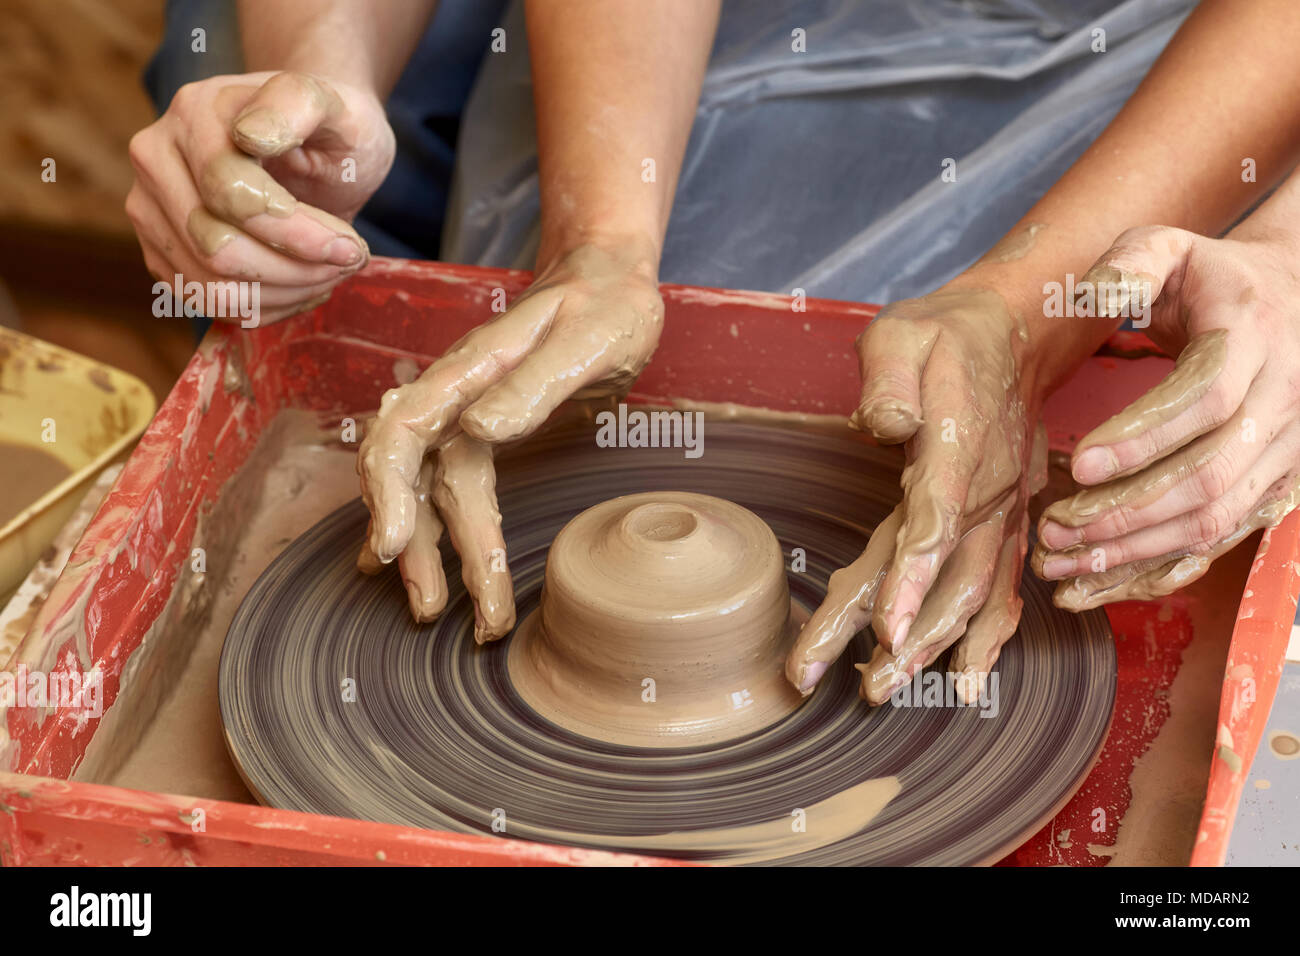 Hands of two people create pot on potter's wheel. Teaching pottery, carftman's hands guiding - Stock Image